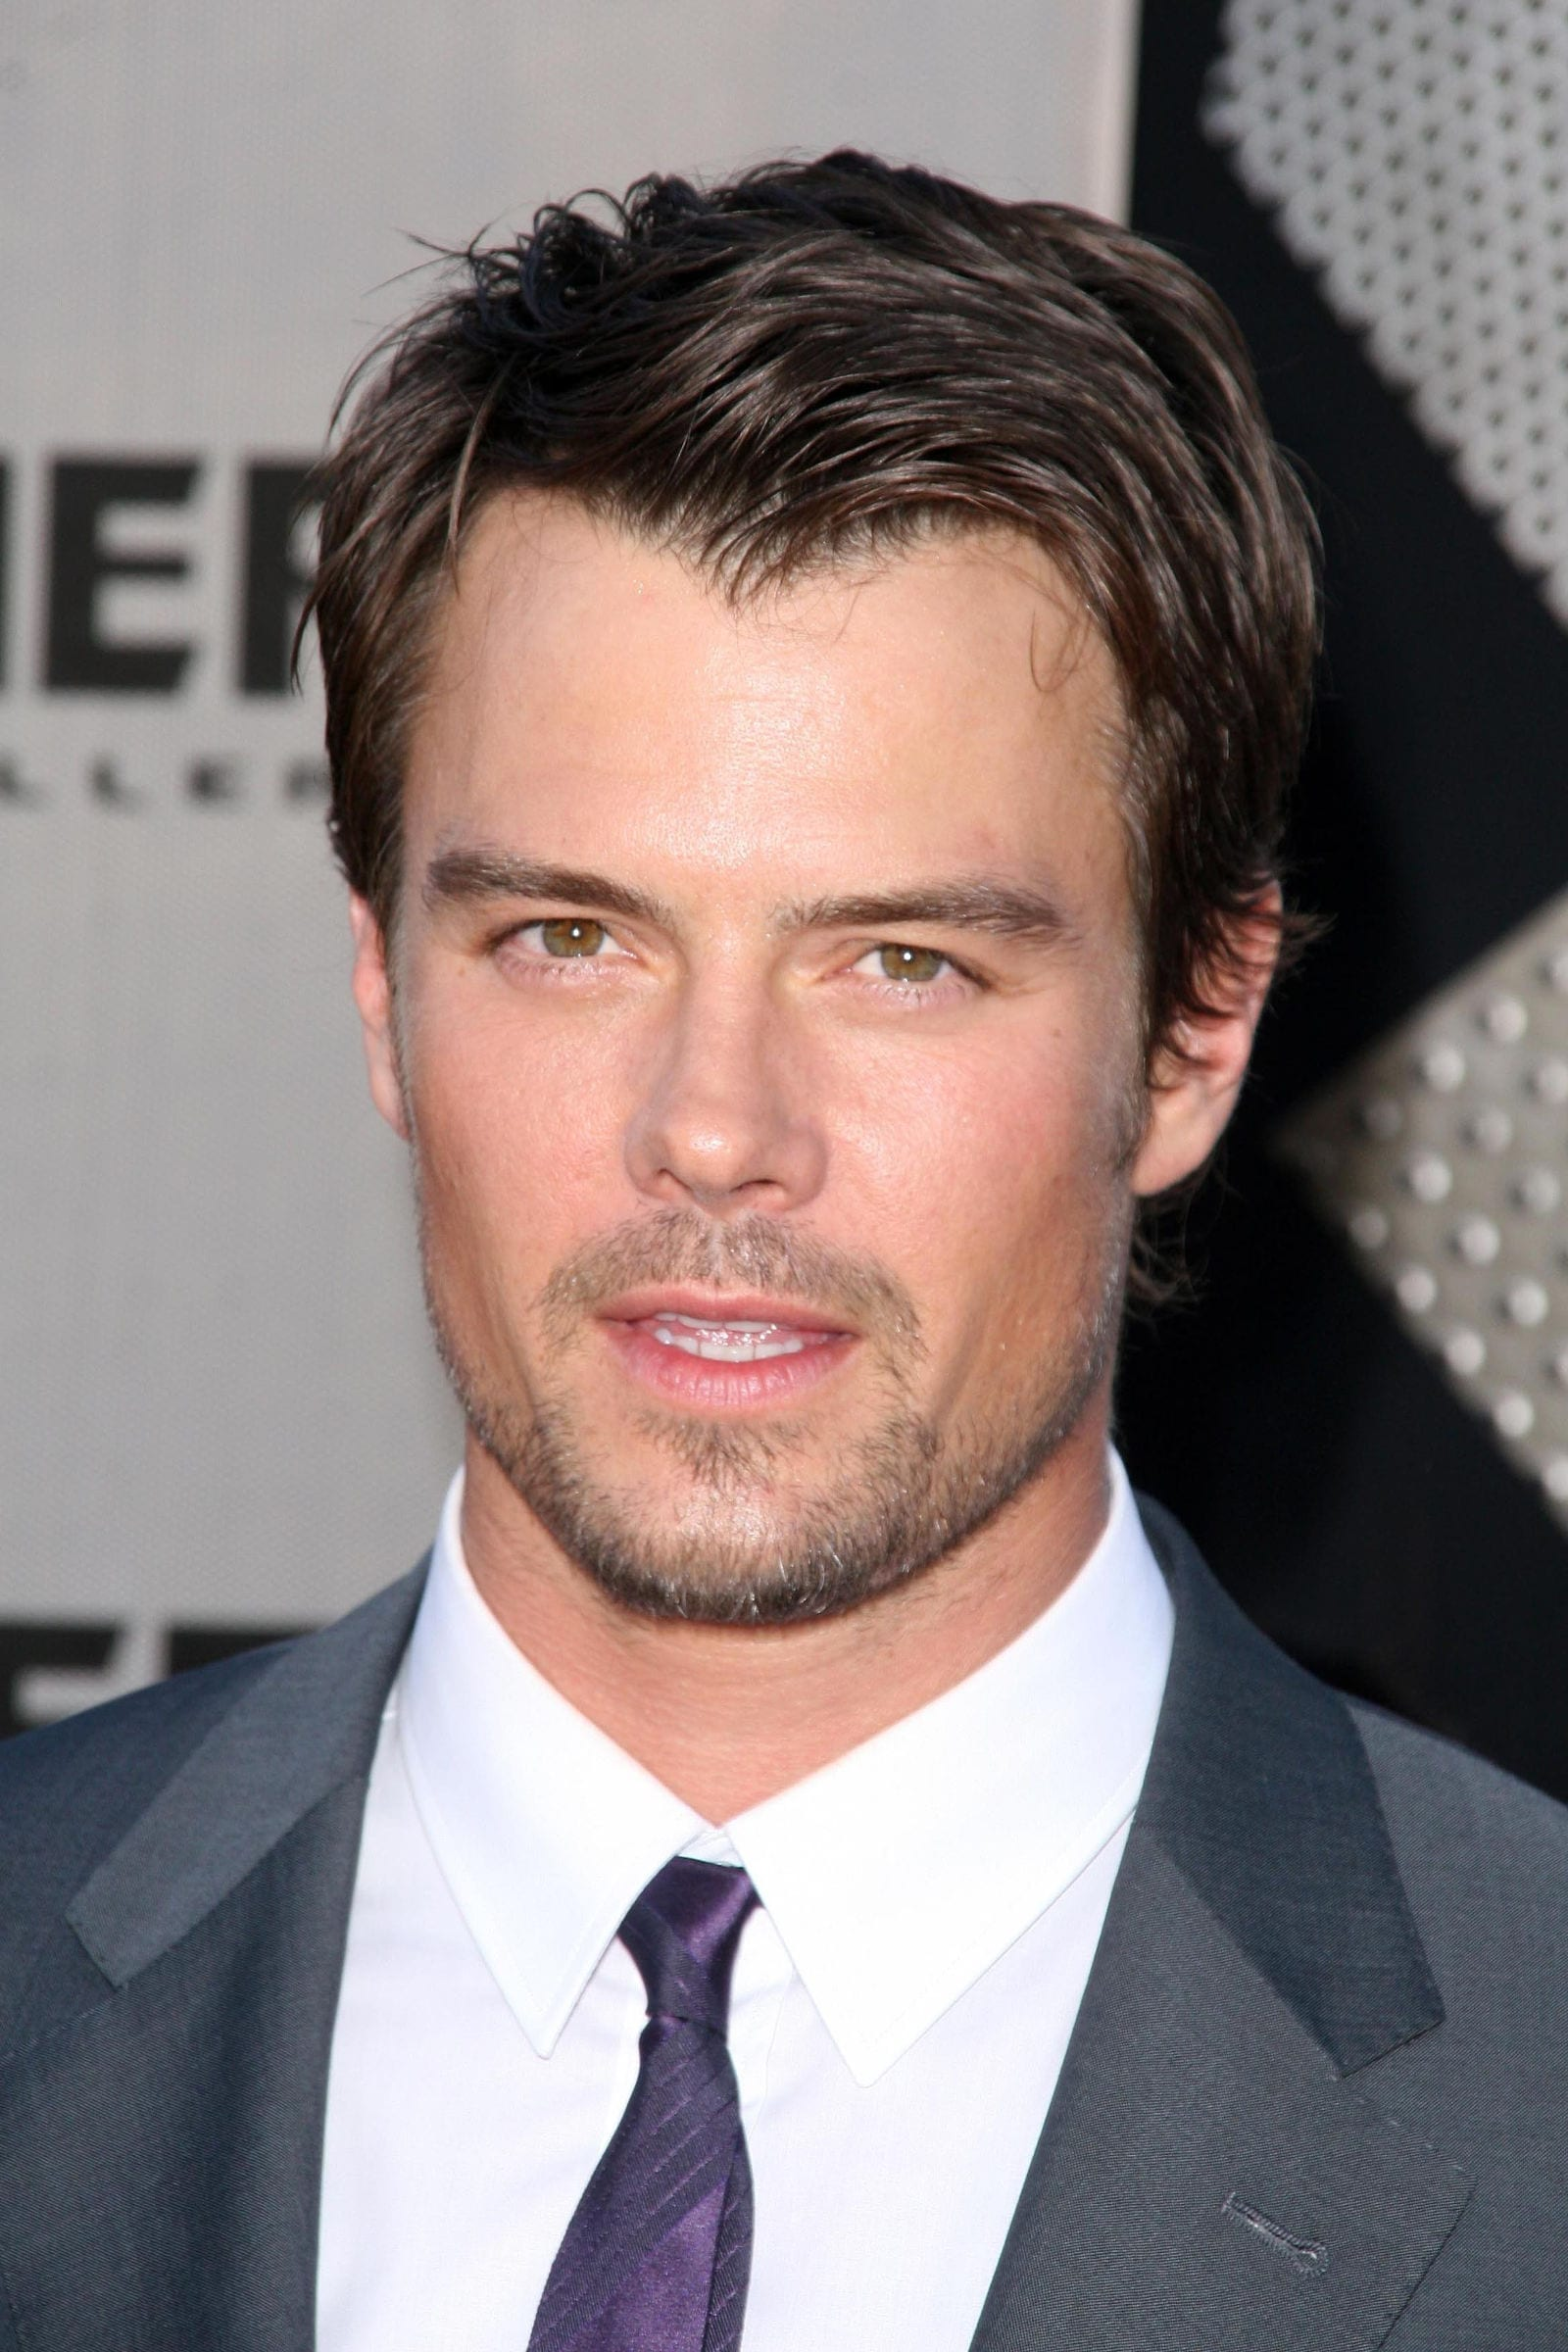 Josh Duhamel widow peak messy side part comb over by s_bukley